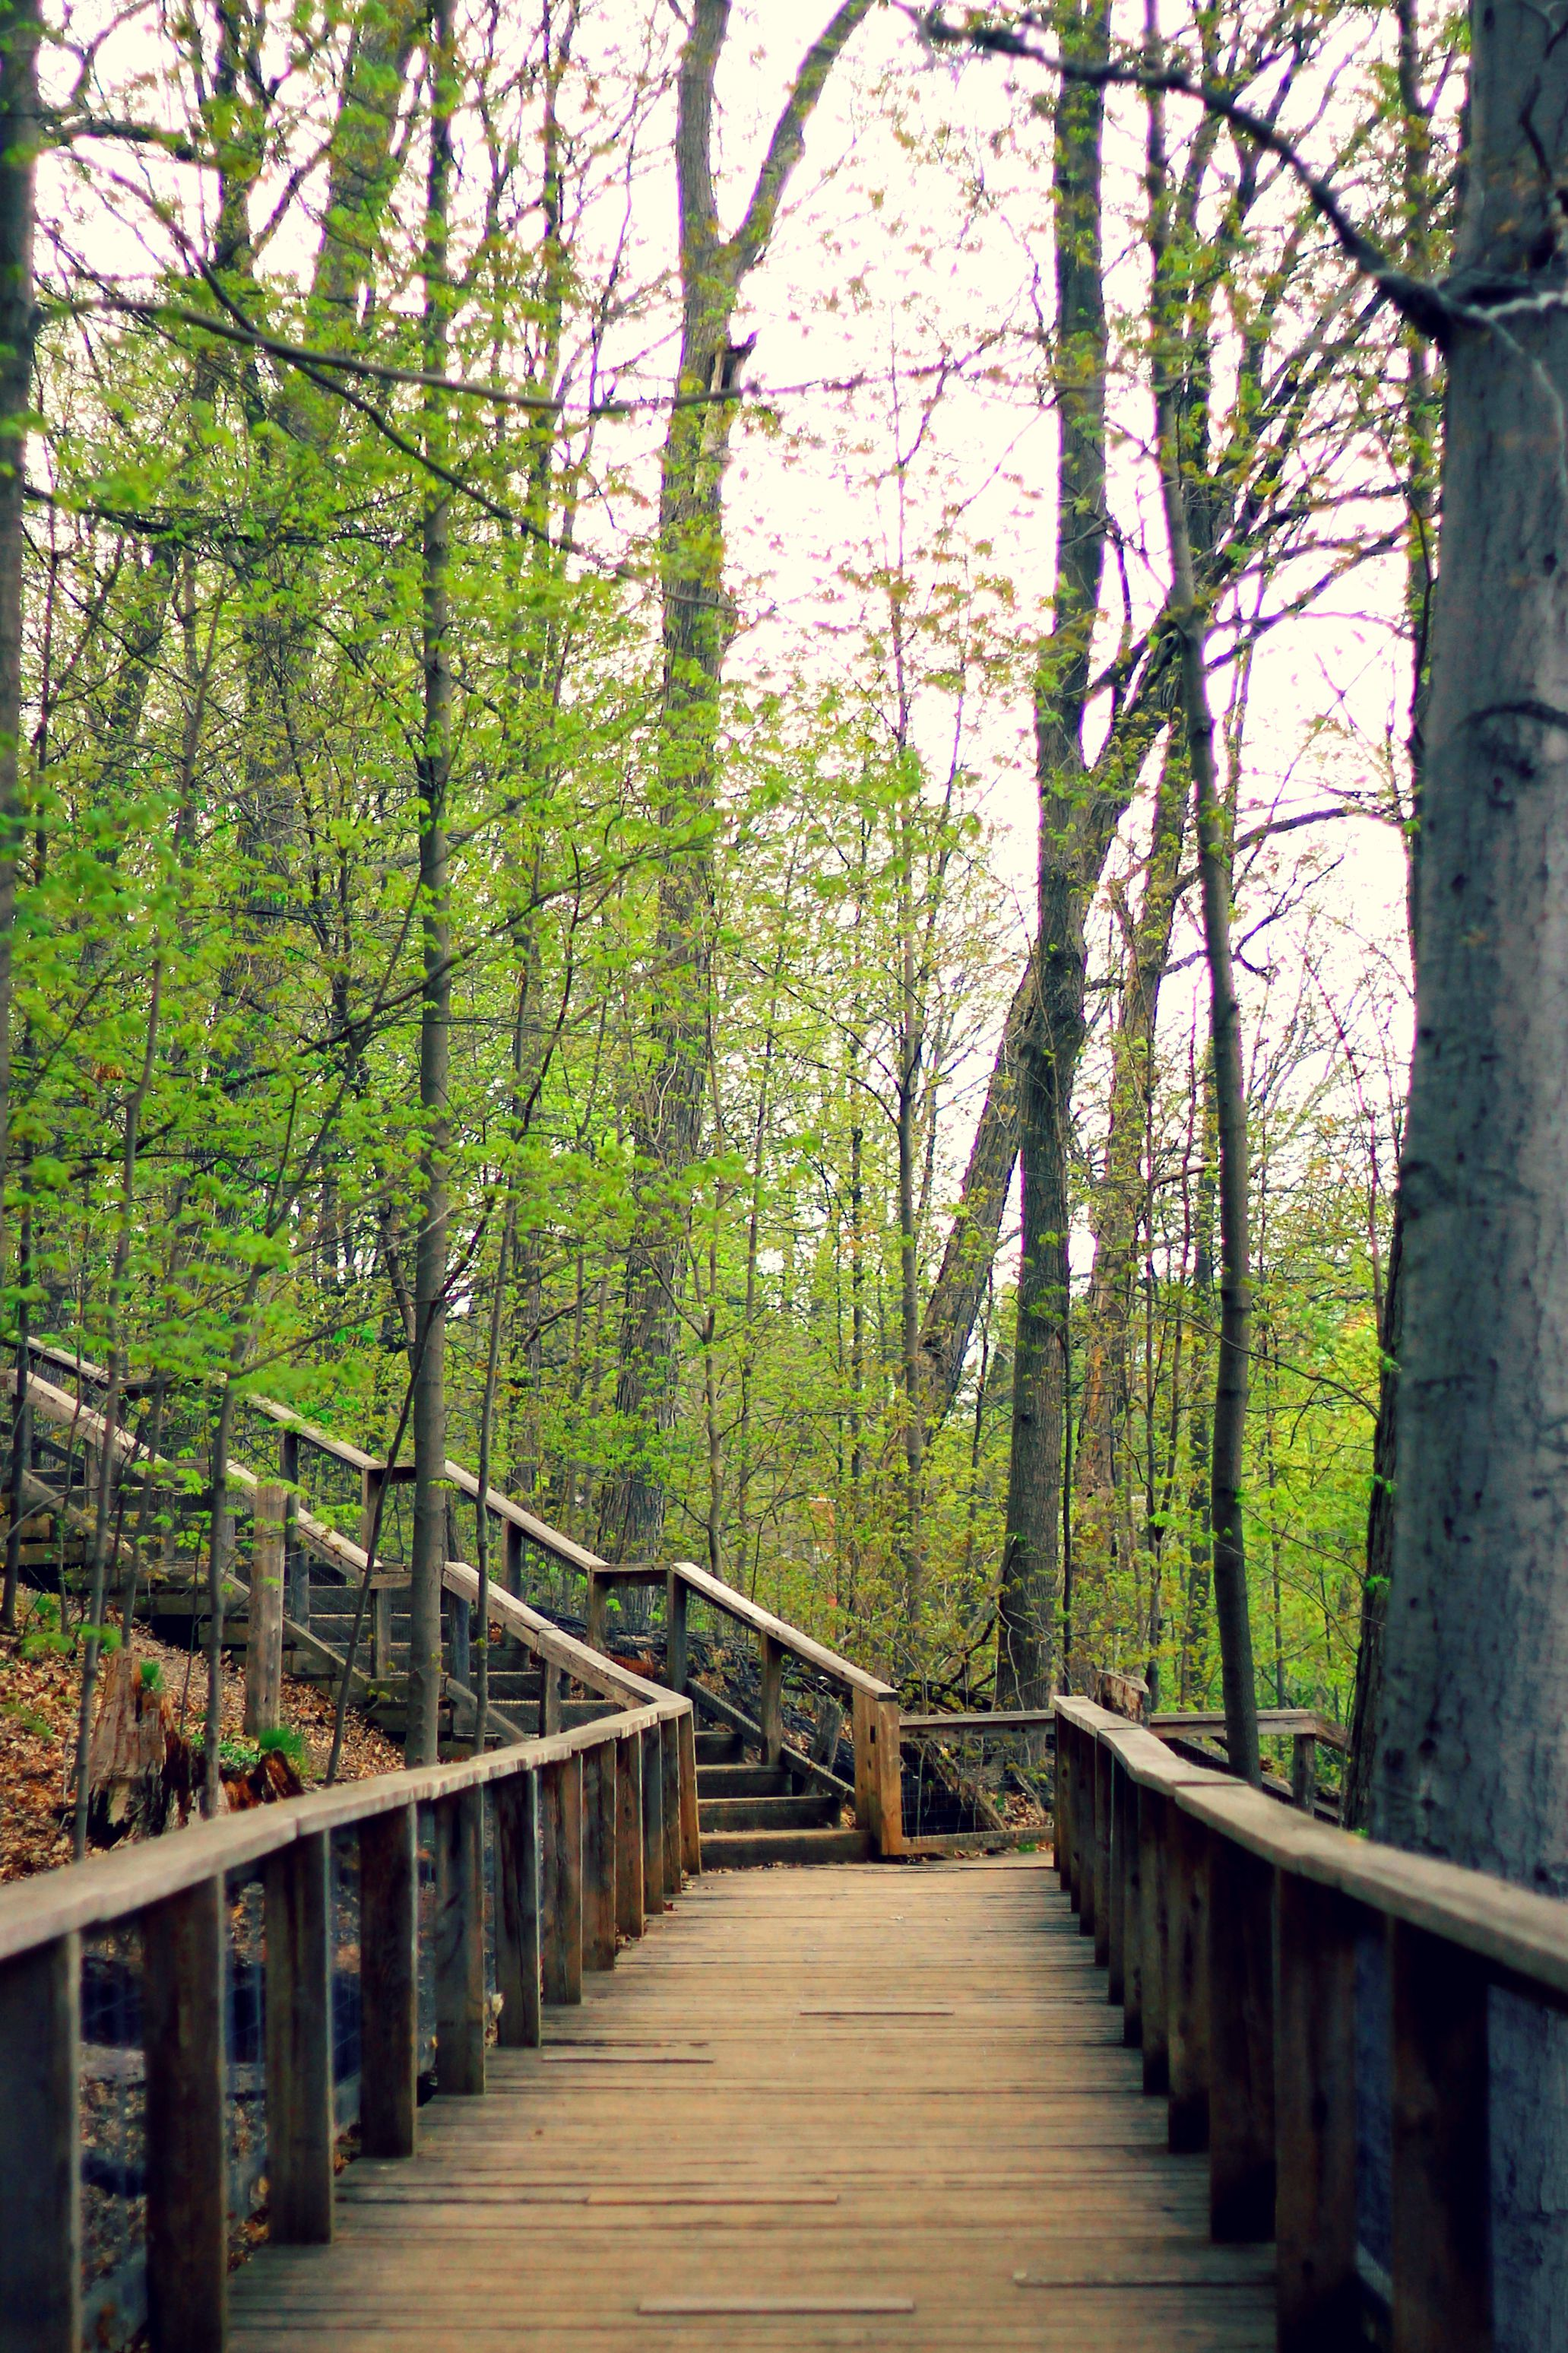 wooden pathway and trees lining sherwood park